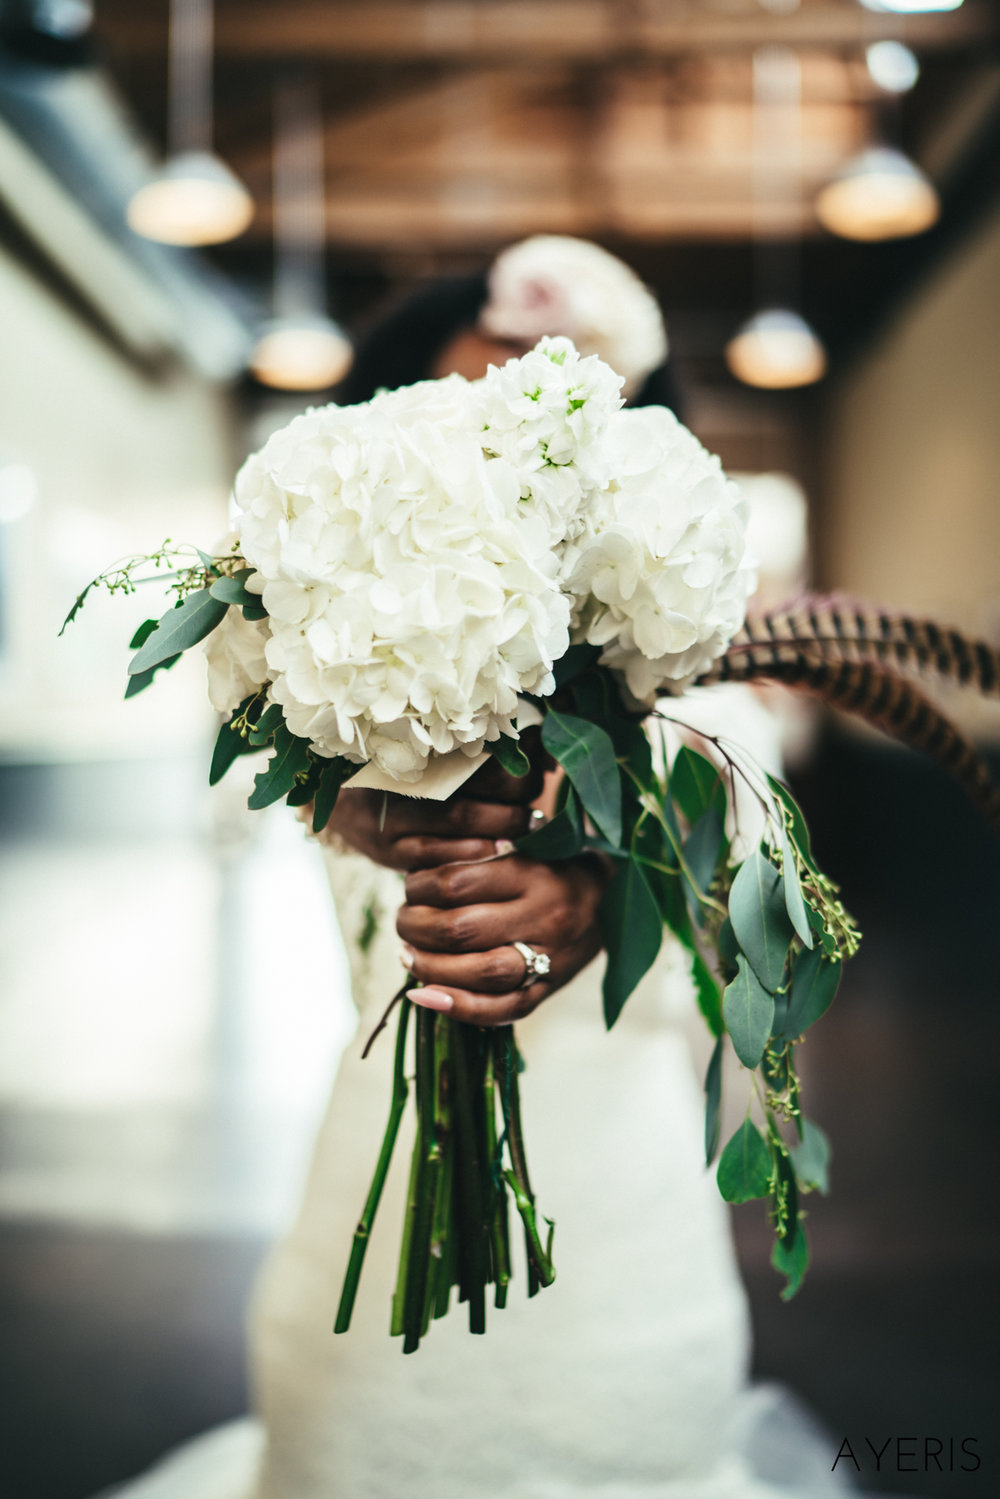 Andrea+Earl's Atlanta Wedding at The Foundry at Puritan Mill by AYERIS Weddings-31.jpg